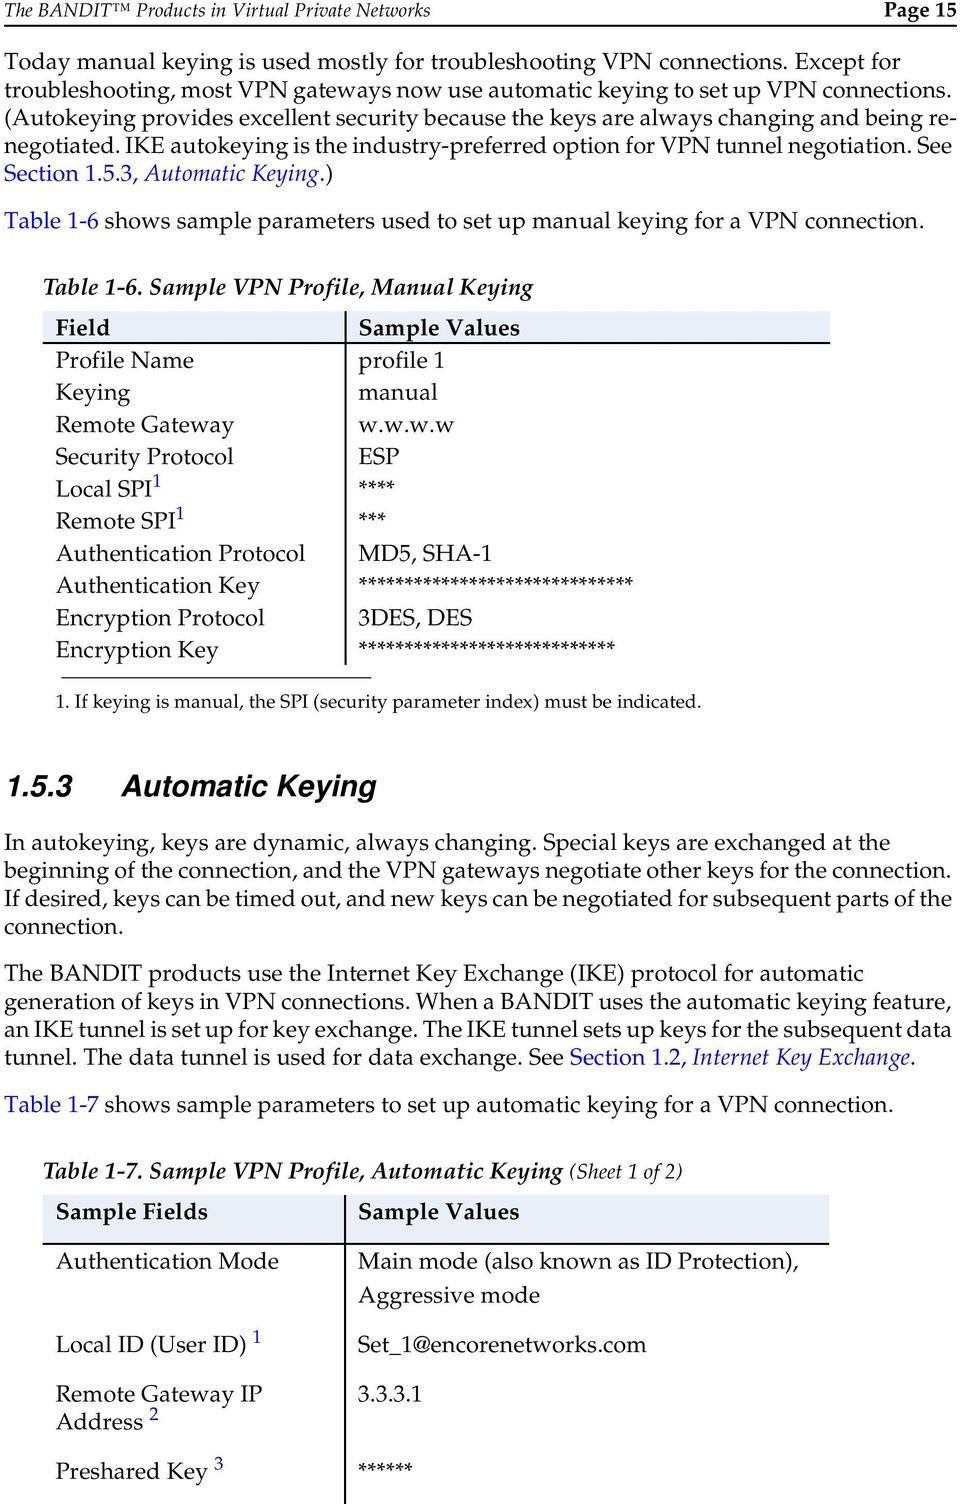 IKE autokeying is the industry-preferred option for VPN tunnel negotiation. See Section 1.5.3, Automatic Keying.) Table 1-6 shows sample parameters used to set up manual keying for a VPN connection.